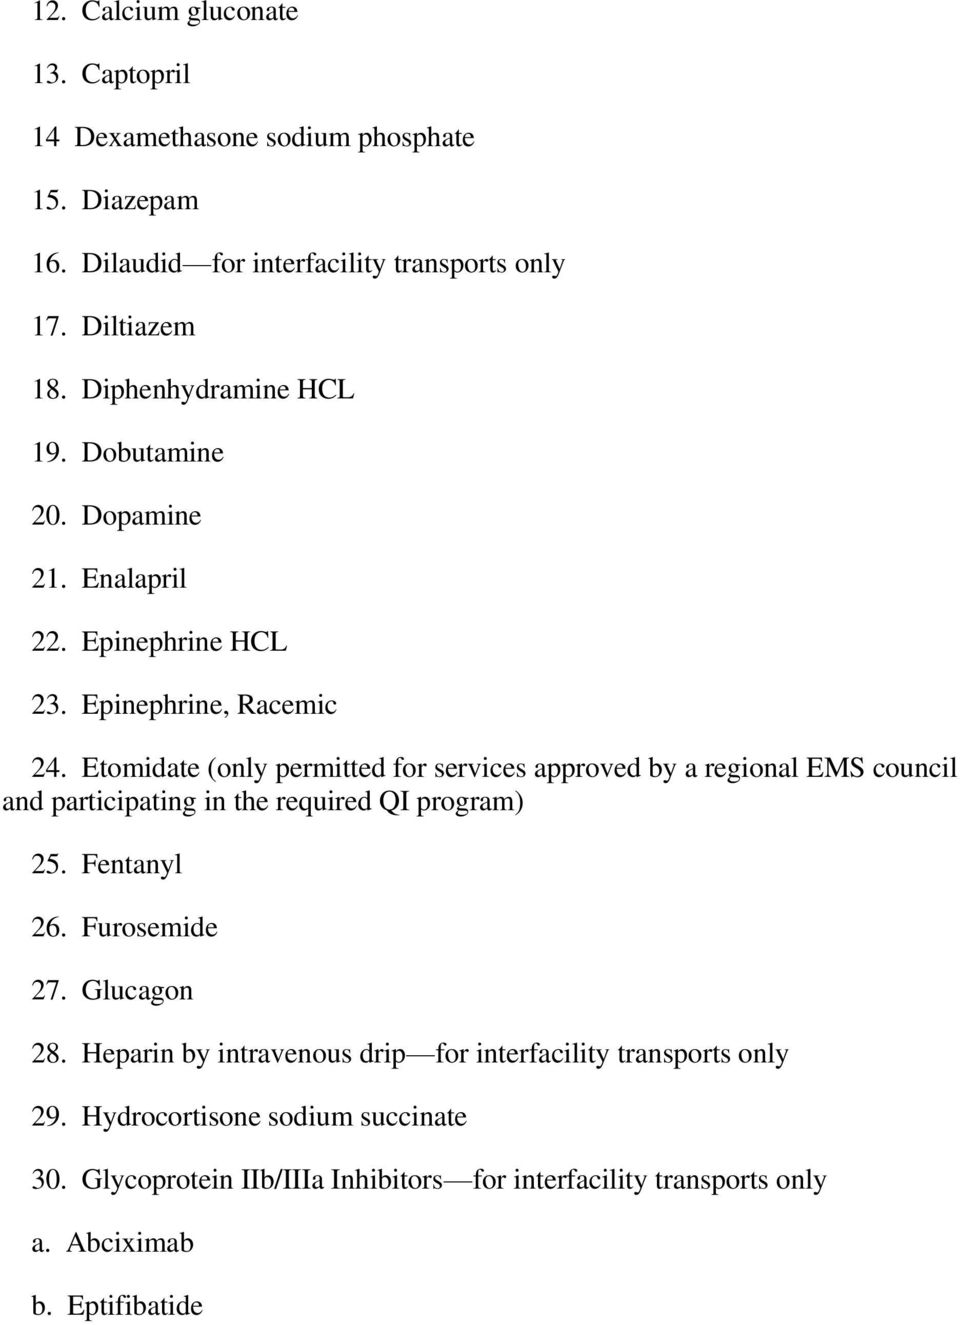 Etomidate (only permitted for services approved by a regional EMS council and participating in the required QI program) 25. Fentanyl 26. Furosemide 27.